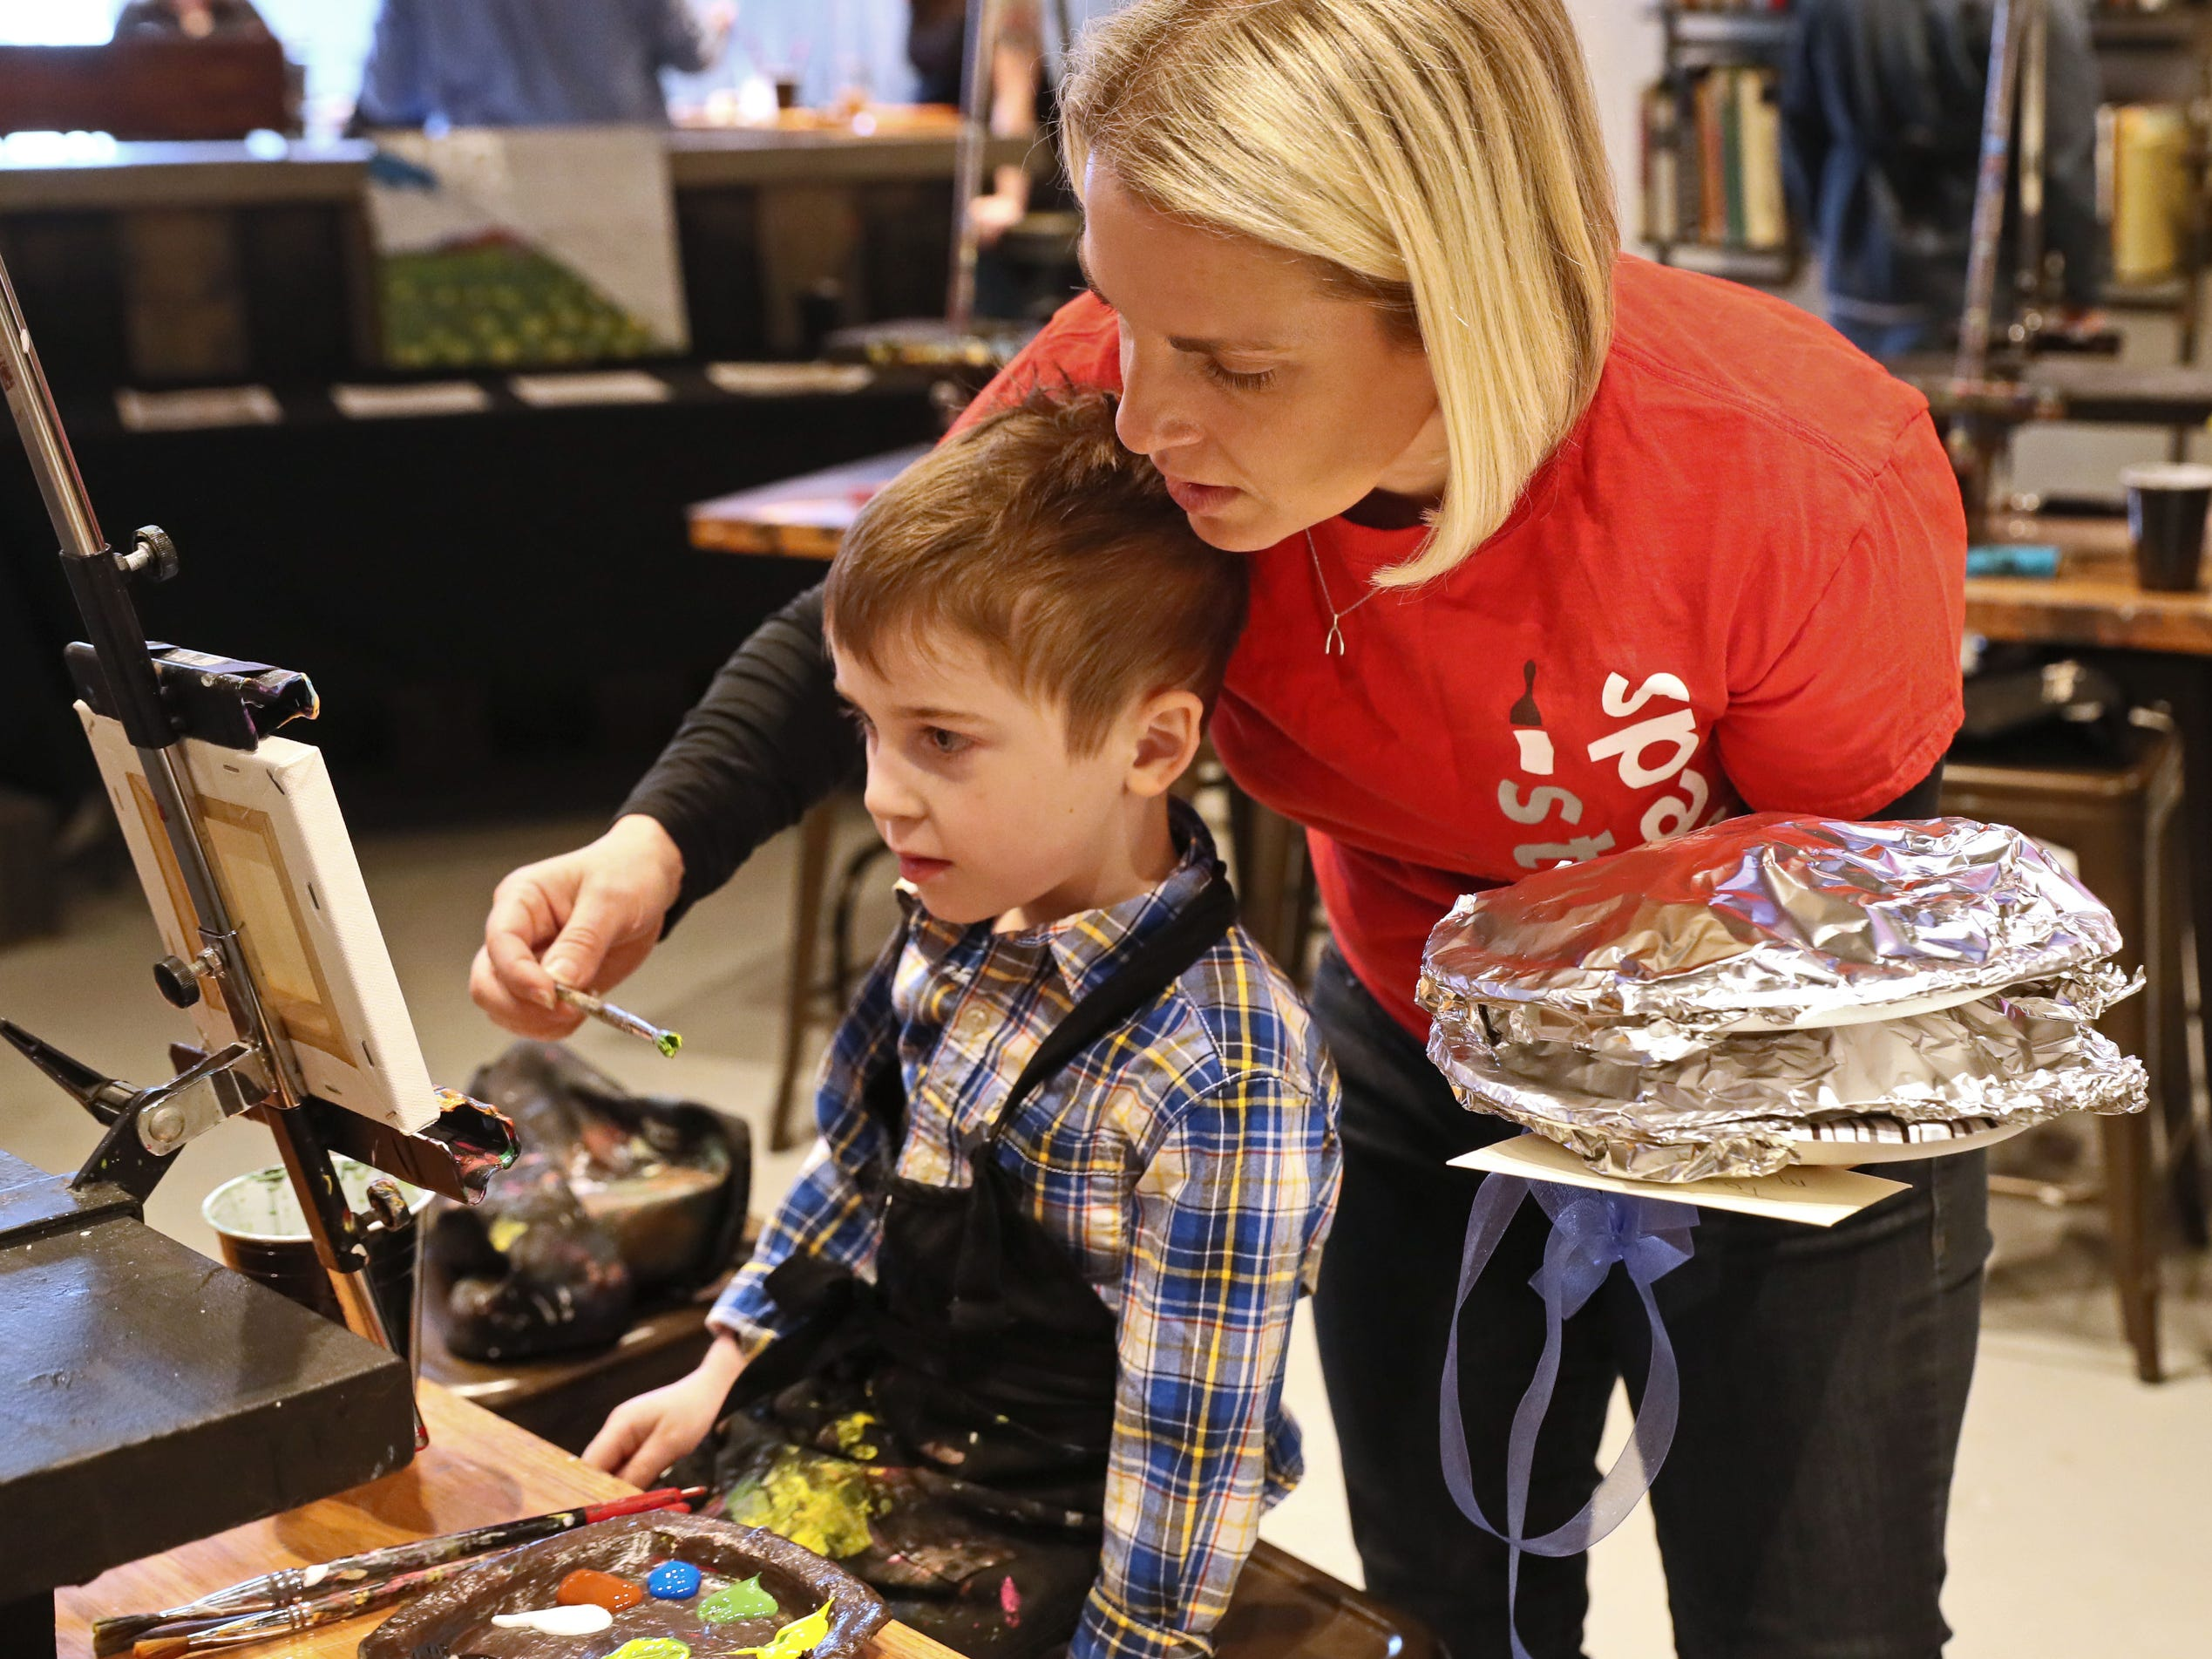 Marla Poytinger, who along with husband David owns the business, helps her son, Micah Poytinger, 5, get set to do some painting. Splash Studio moved from the Third Ward to 1815 E. Kenilworth Place on the east side of Milwaukee.  On Sunday, they held a grand reopening event.